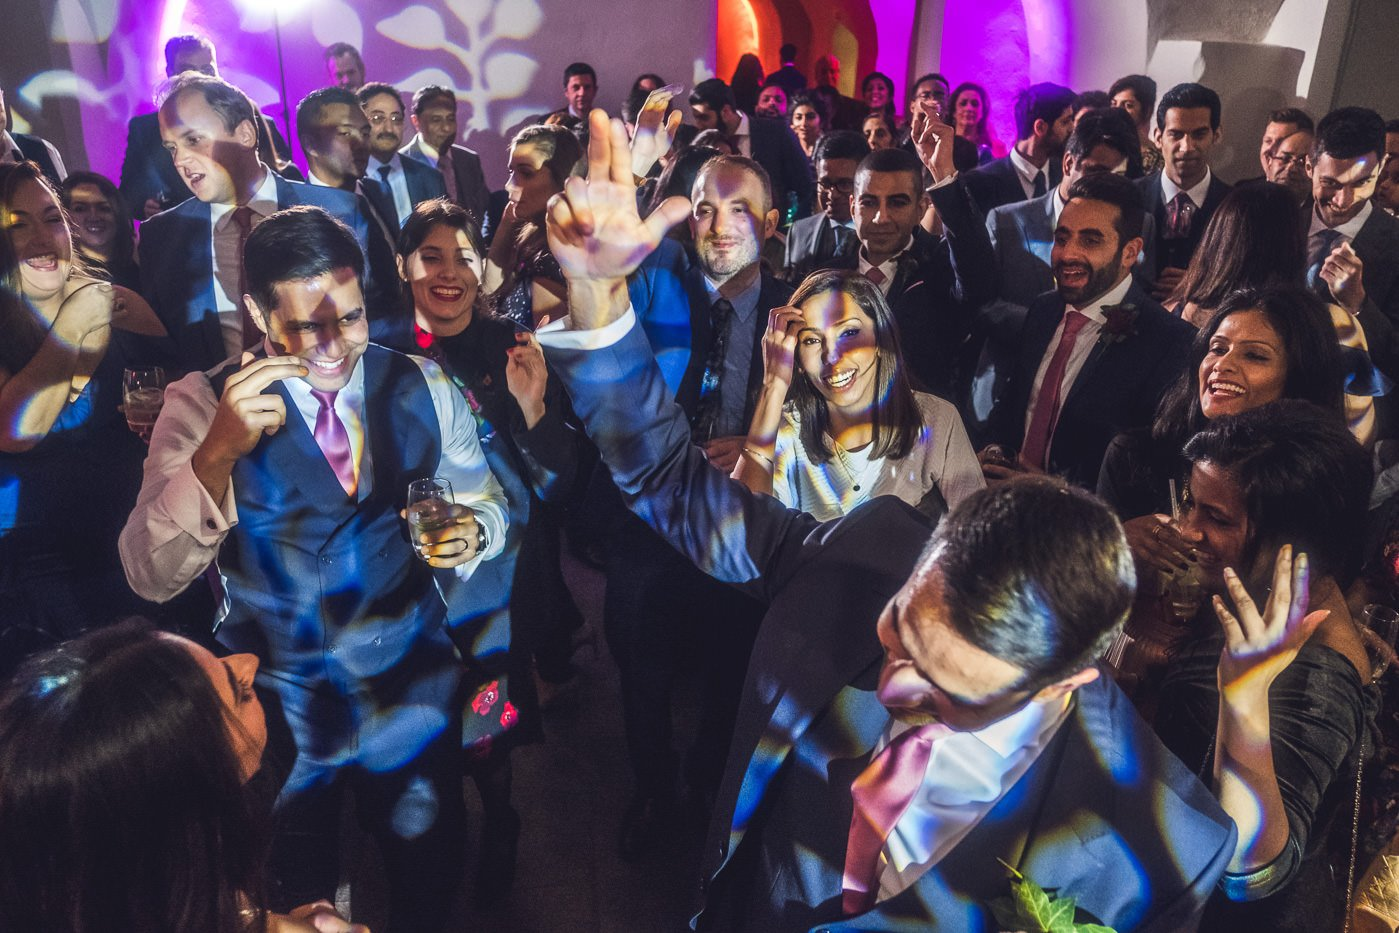 Wedding guests on dance floor at The Queens House Greenwich